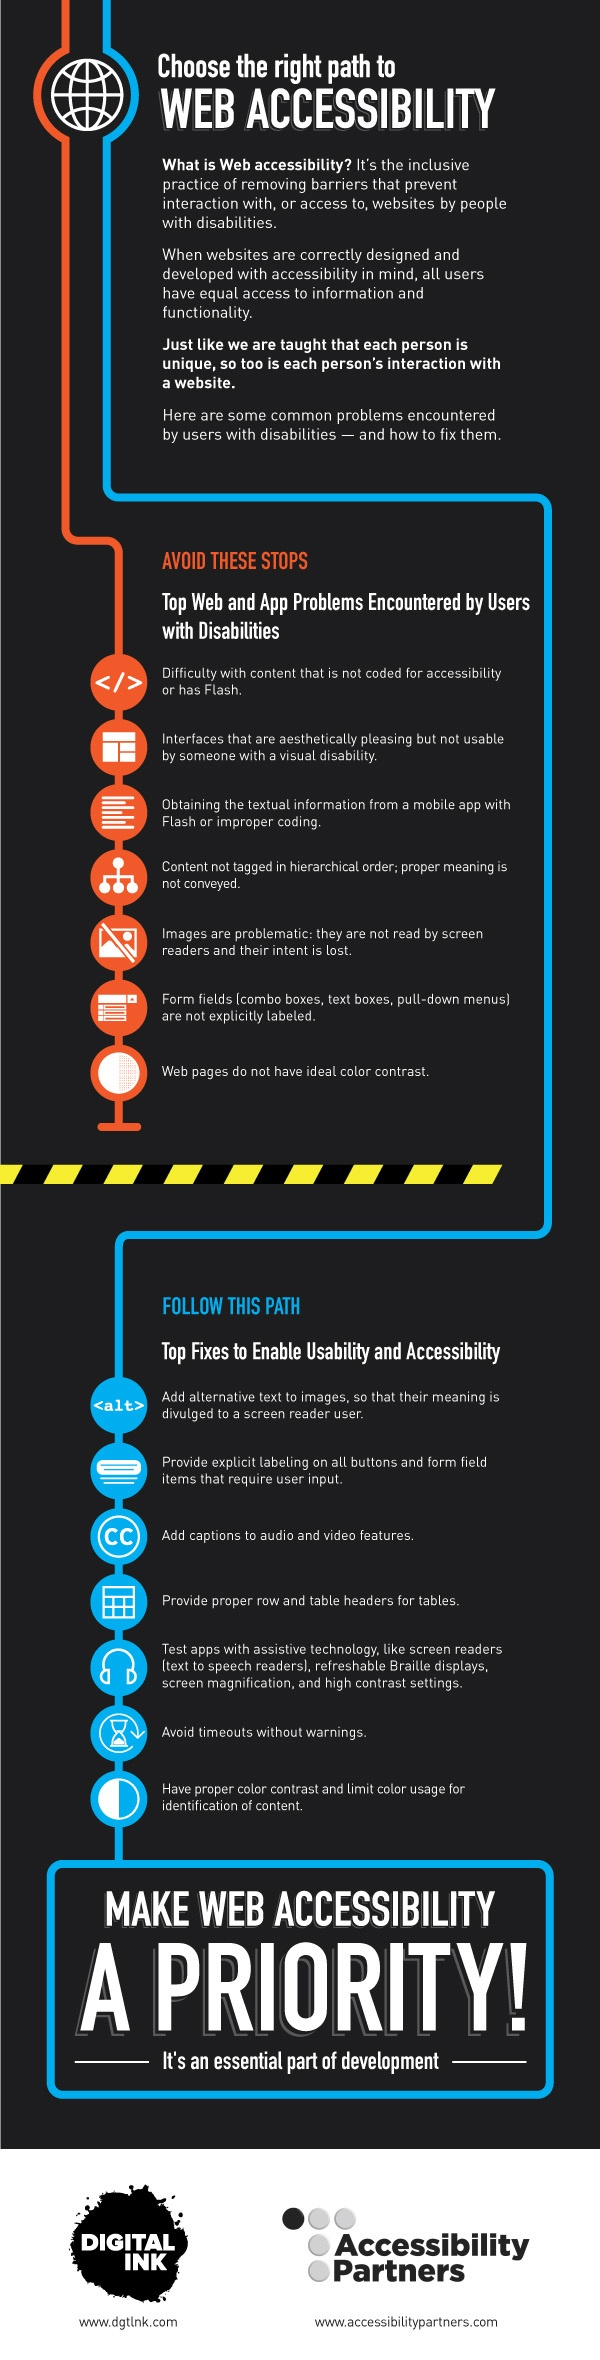 web-accessibility-infographic